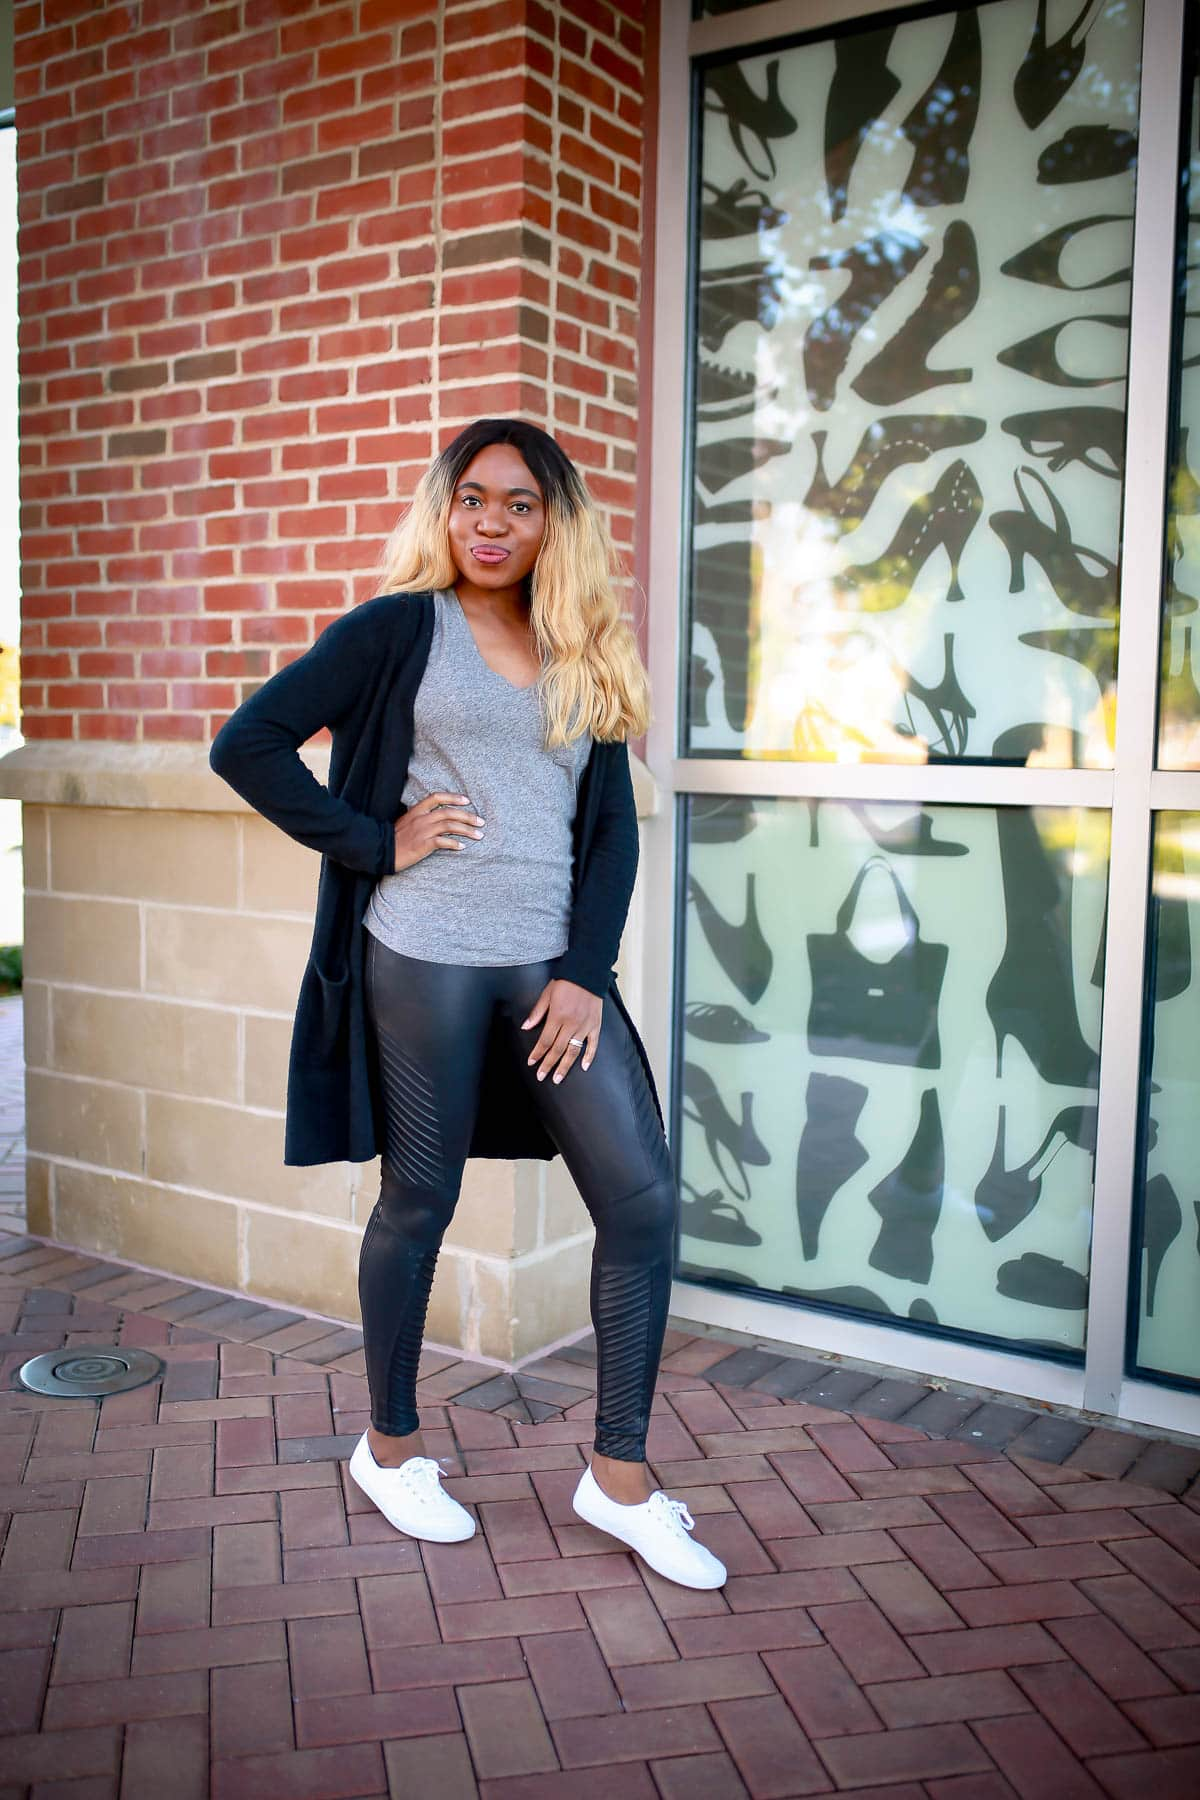 Spanx Moto leggings outfit | Sharing a simple biker-chic way to style the Spanx Faux Leather Moto Leggings on the blog with Nordstrom. Why everyone is raving about this luxury leggings and if this leggings truly lives up to its name as a Spanx bestseller.